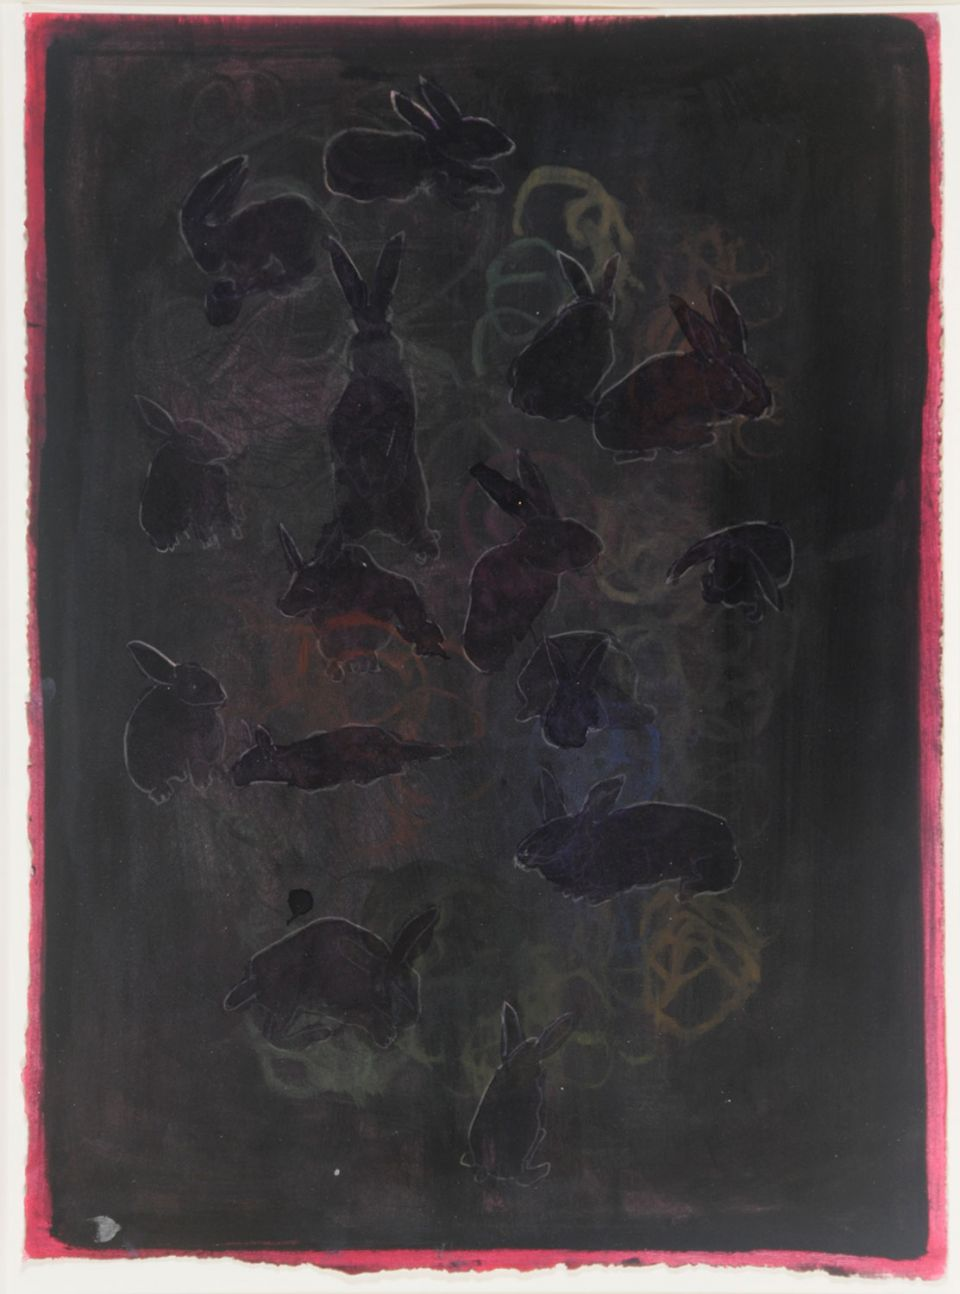 Lucia Nogueira Untitled 1989-92 (rabbits dark)